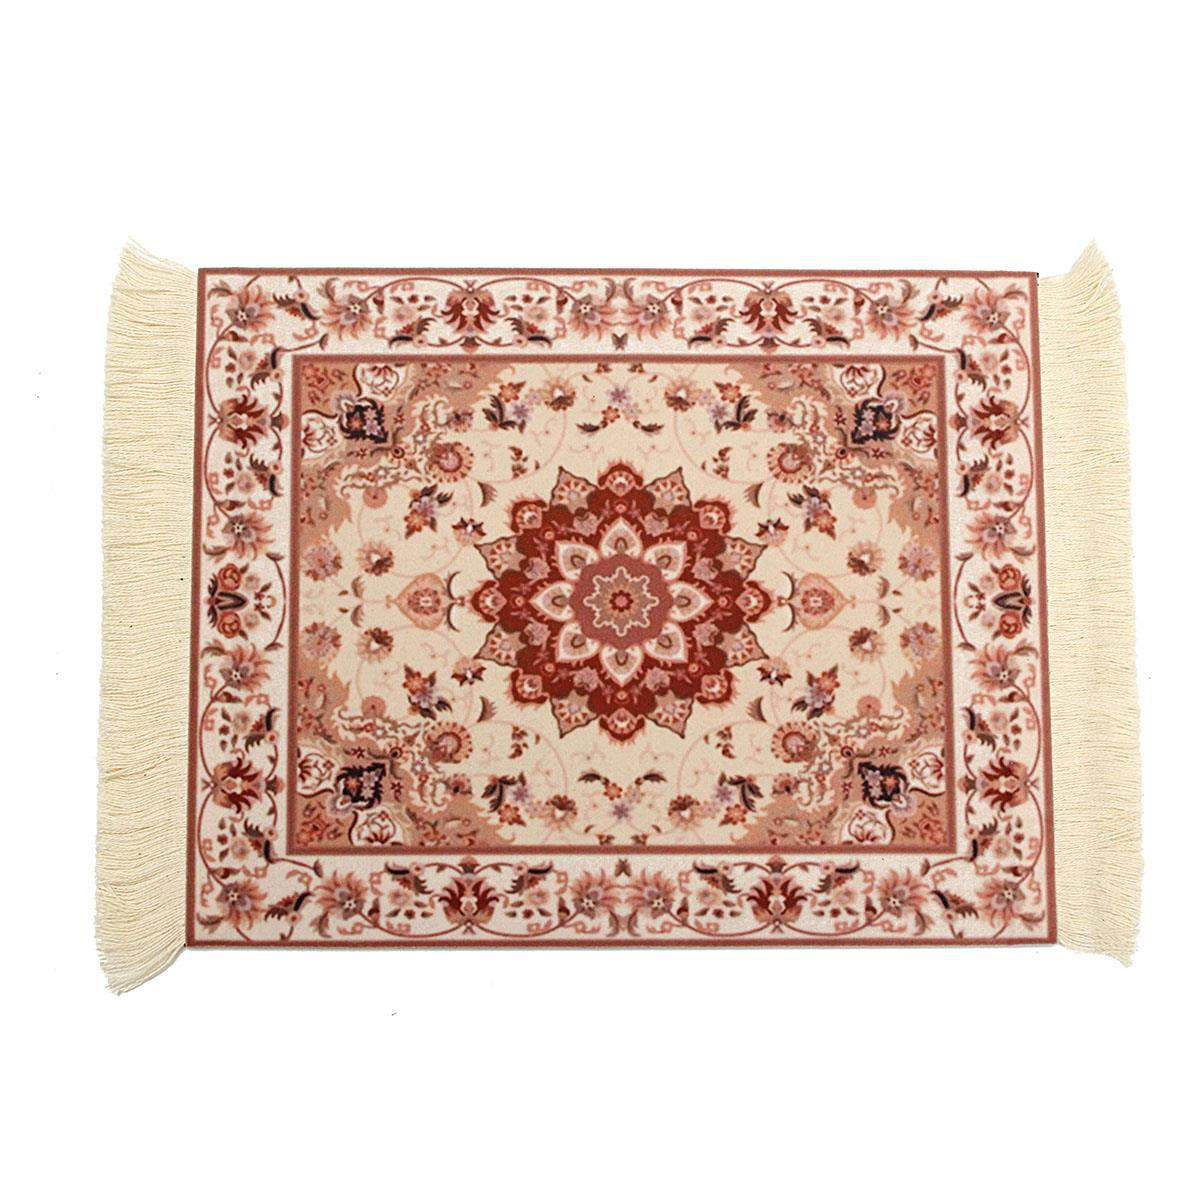 Cotton Rubber Persian Mini Woven Rug Mouse Pad Carpet Mousemat With Fringe  Home Office Table Decorative